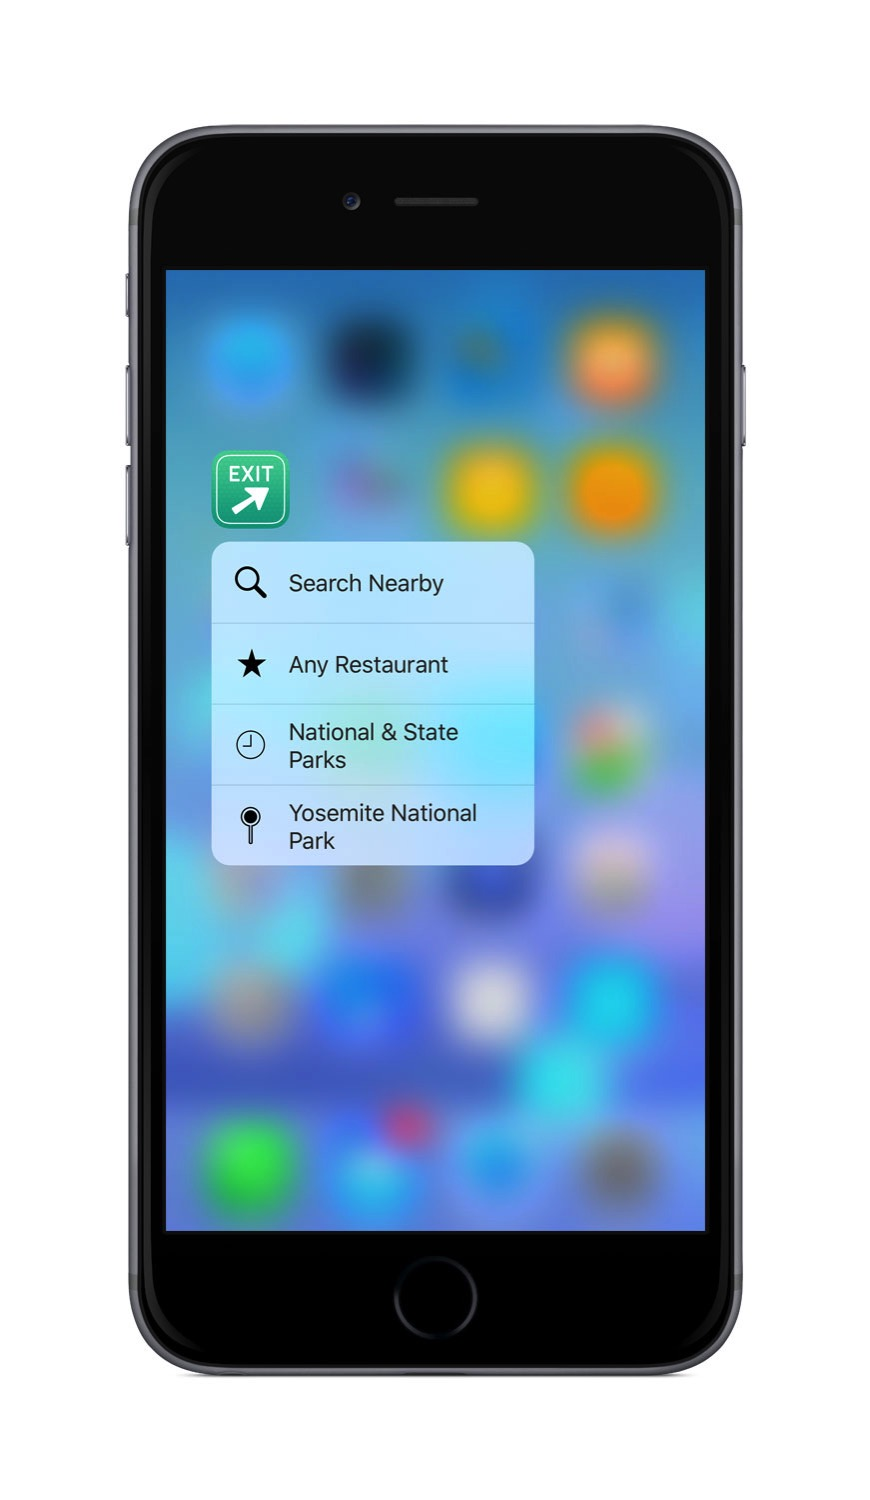 3D Touch shortcuts in Where To?